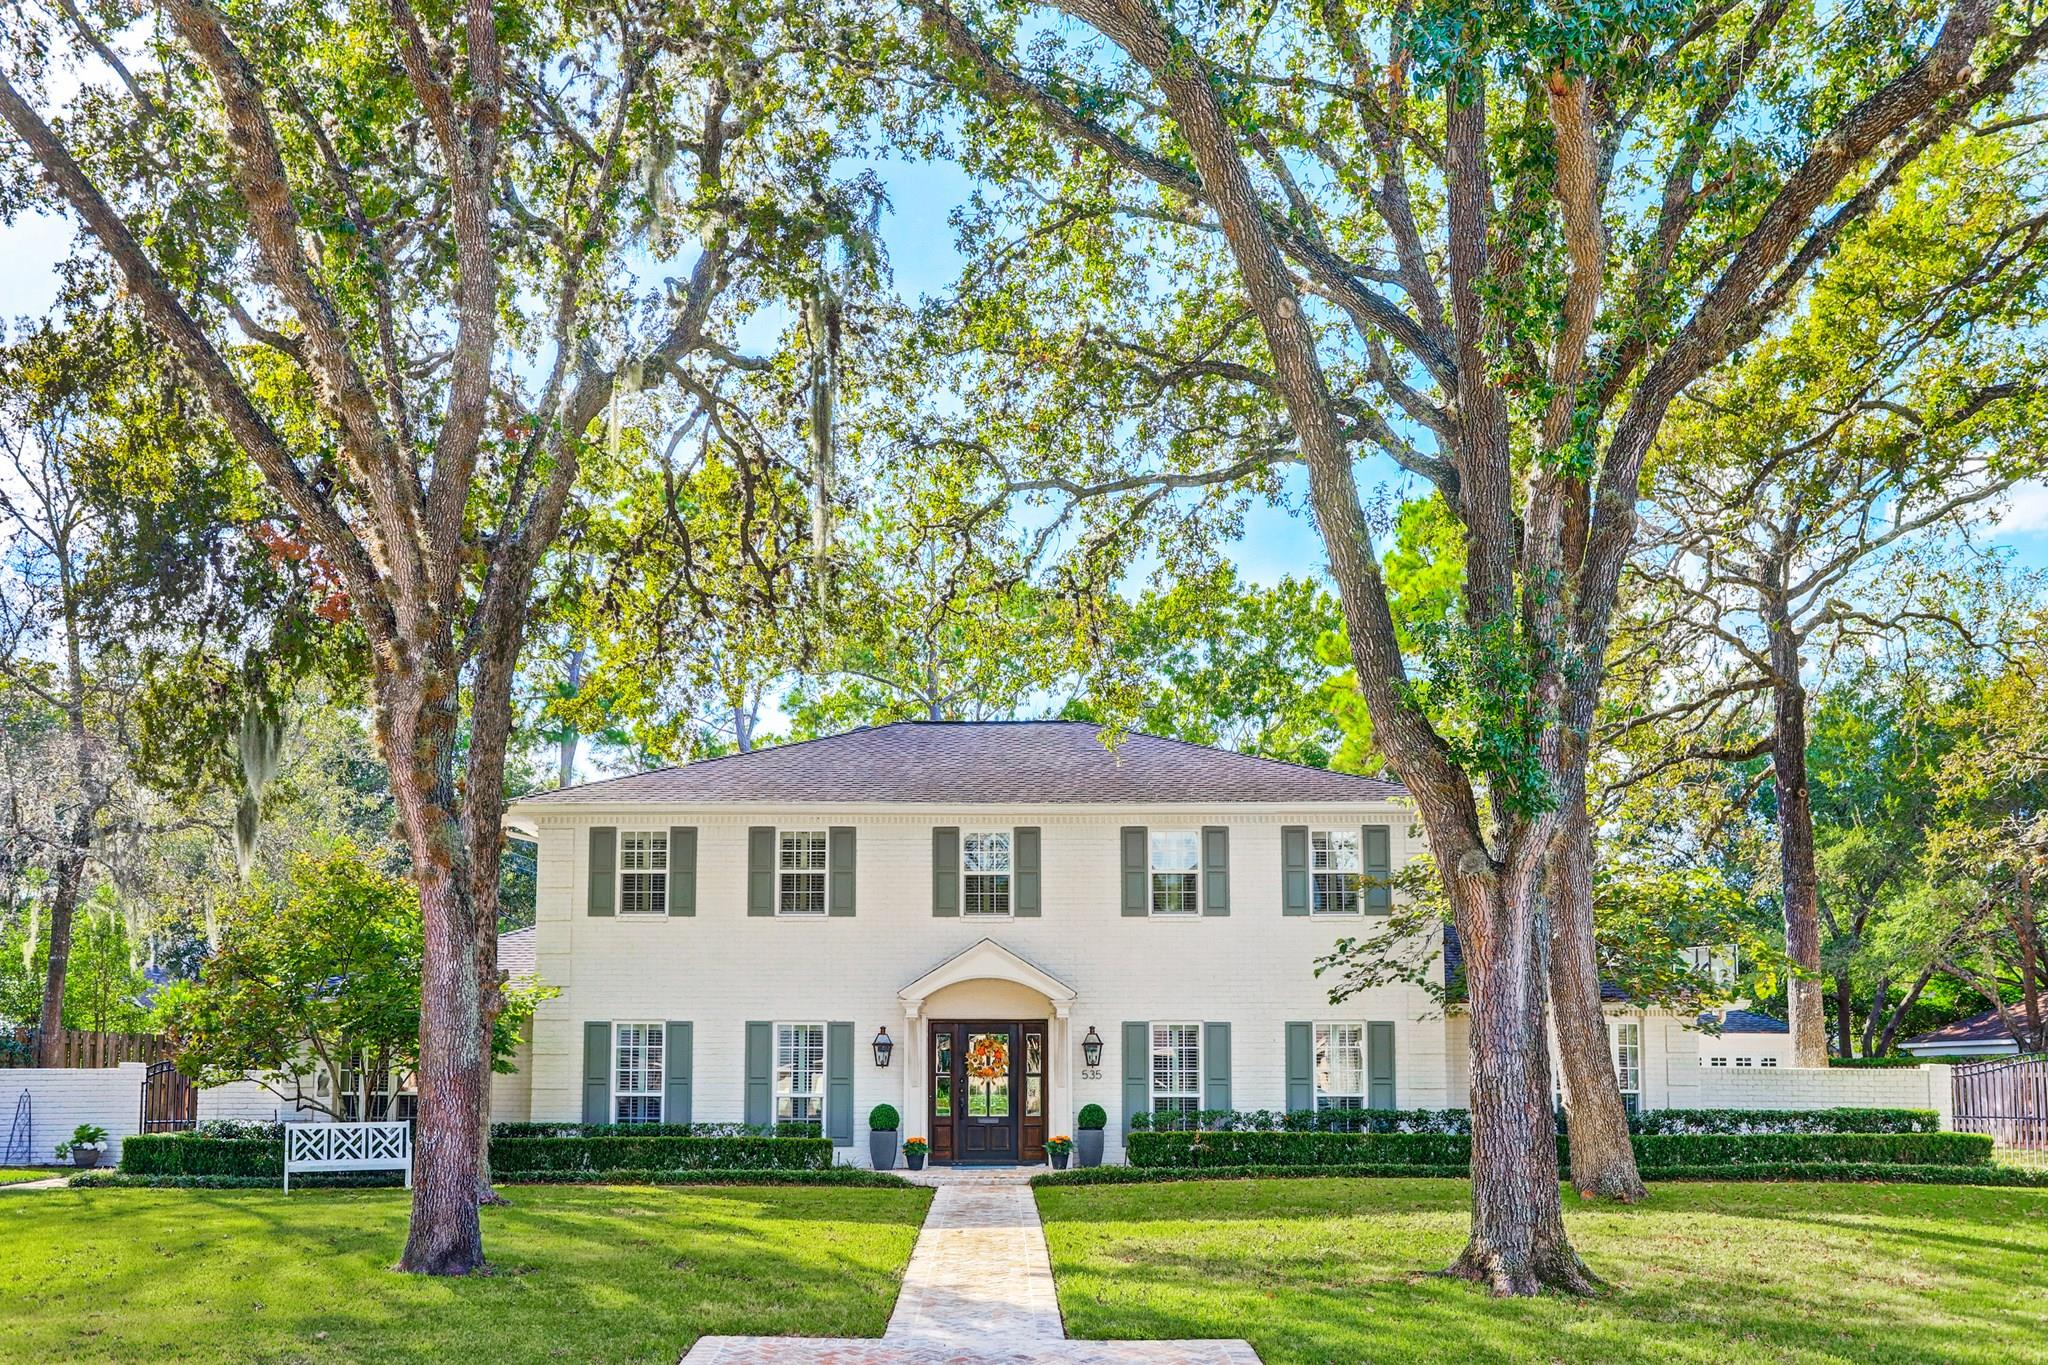 535 Regentview Drive Property Photo - Houston, TX real estate listing